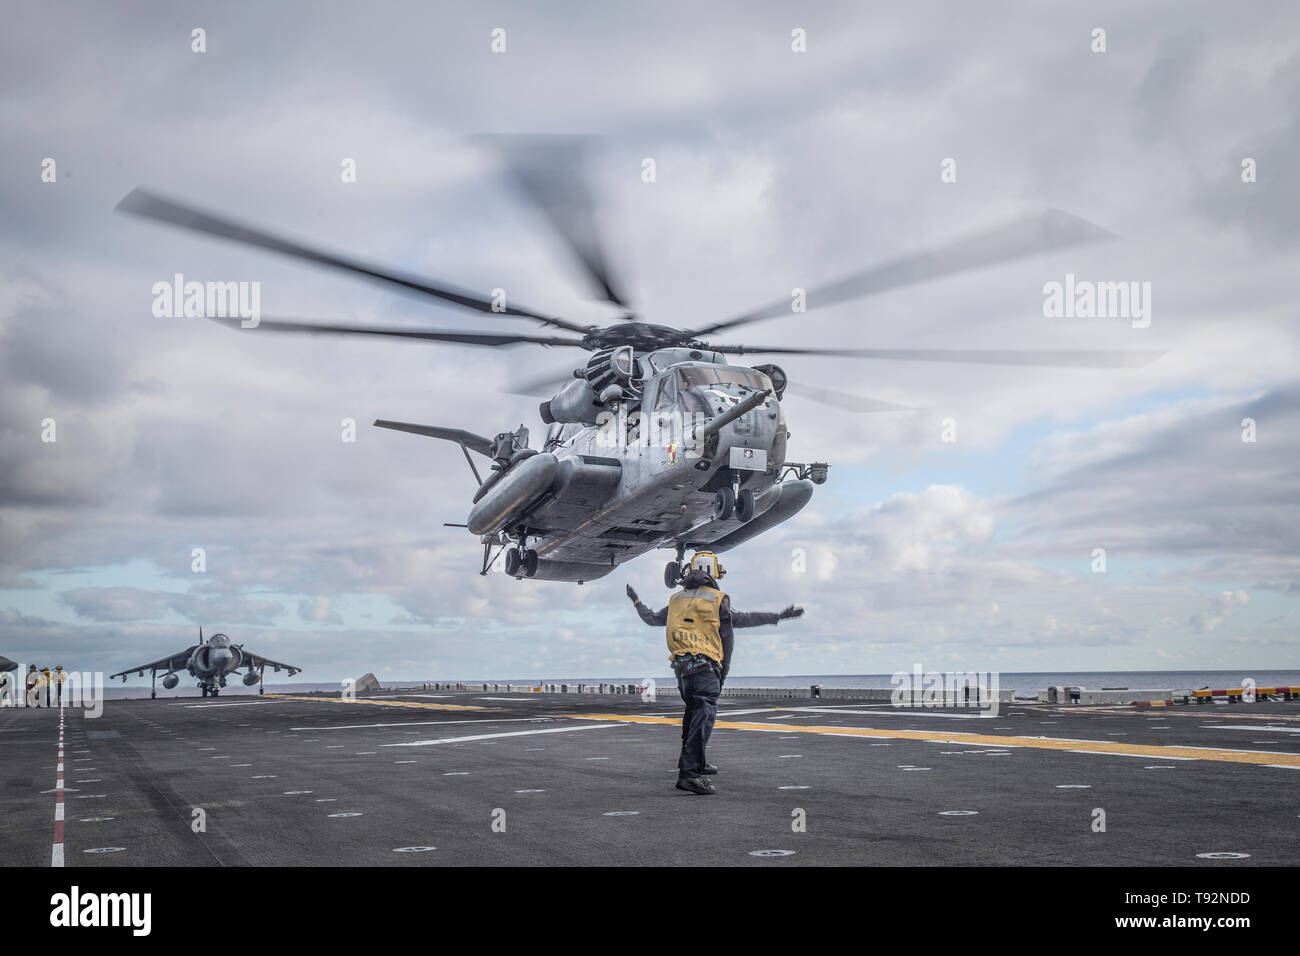 190505-M-EC058-0116 PACIFIC OCEAN (May 5, 2019) A CH-53E Super Stallion attached with Marine Medium Tiltrotor Squadron (VMM) 163 (Reinforced), 11th Marine Expeditionary Unit (MEU), prepares to land during flight operations aboard the amphibious assault ship USS Boxer (LHD 4). The Boxer Amphibious Ready Group/11th MEU is a capable and lethal Navy-Marine Corps team deployed to support regional stability, reassure partners and allies and maintain a presence postured to respond to any crisis ranging from humanitarian assistance to contingency operations. (U.S. Marine Corps photo by Lance Cpl. Dalt - Stock Image